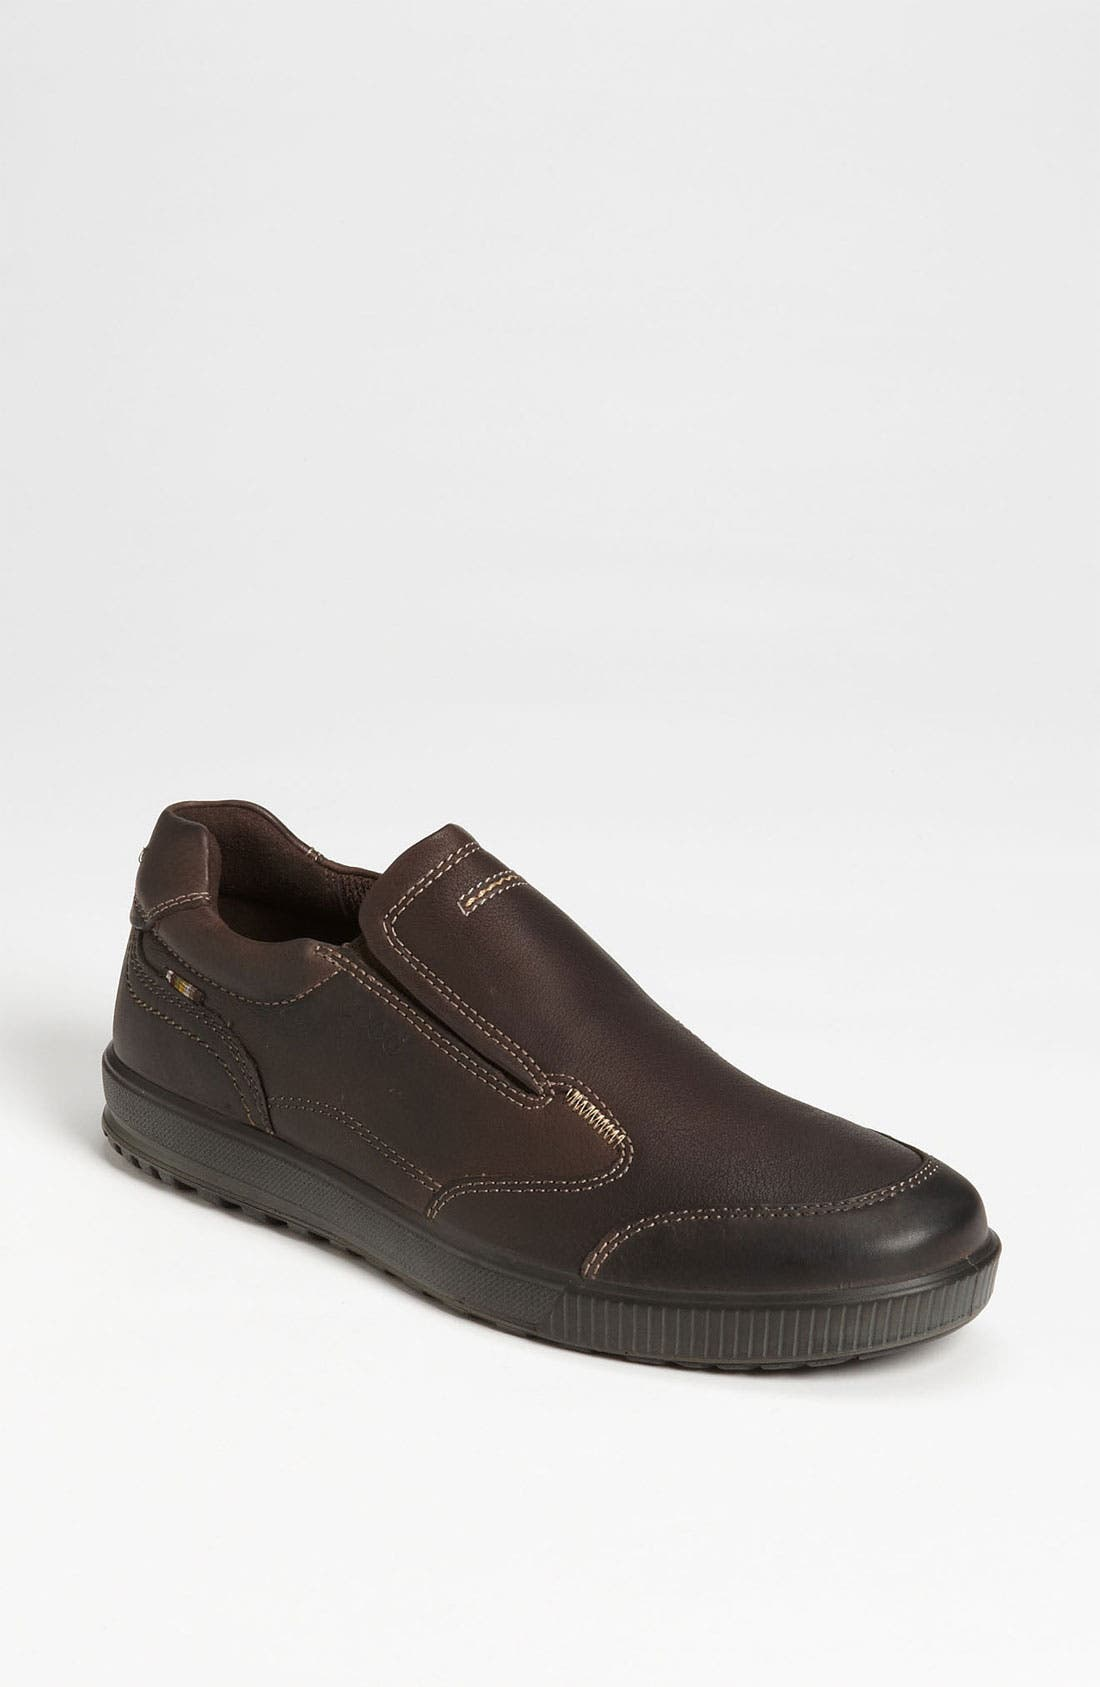 Alternate Image 1 Selected - ECCO 'Bradley' Slip-On